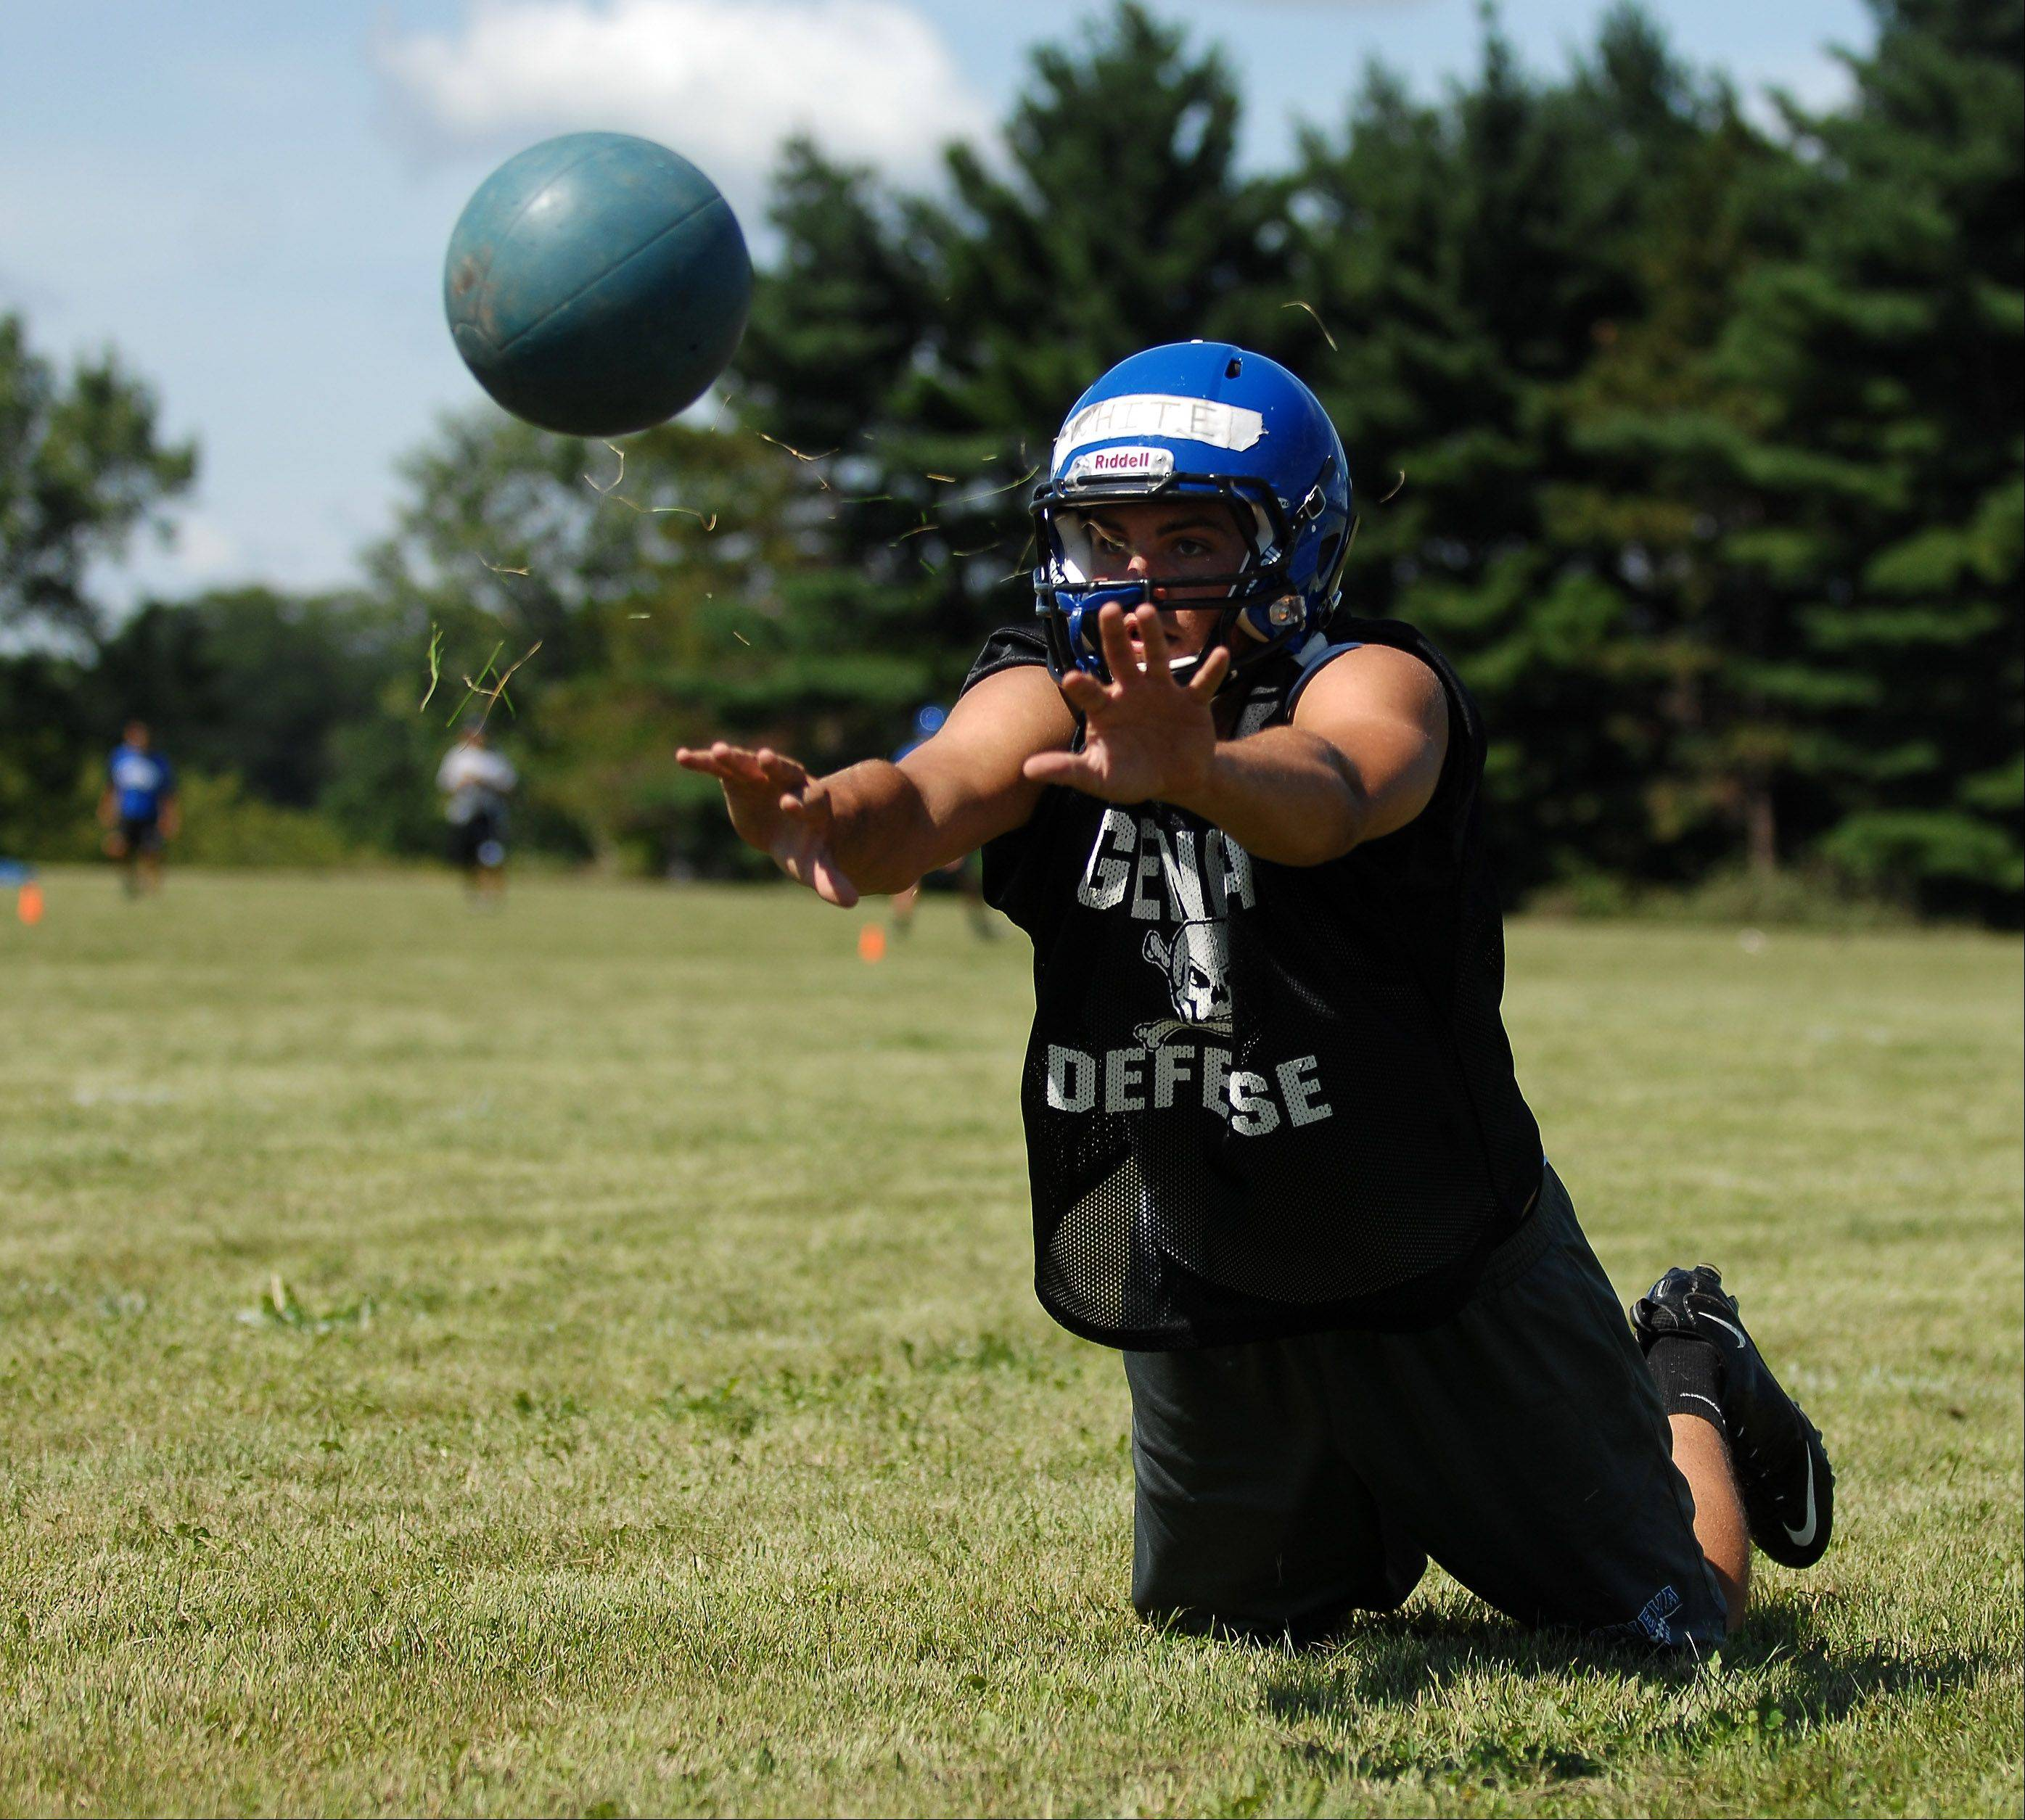 Drew White lunges and throws a medicine ball during Wednesday's first day of football practice for Geneva High School at the former Broadview Academy site in La Fox.